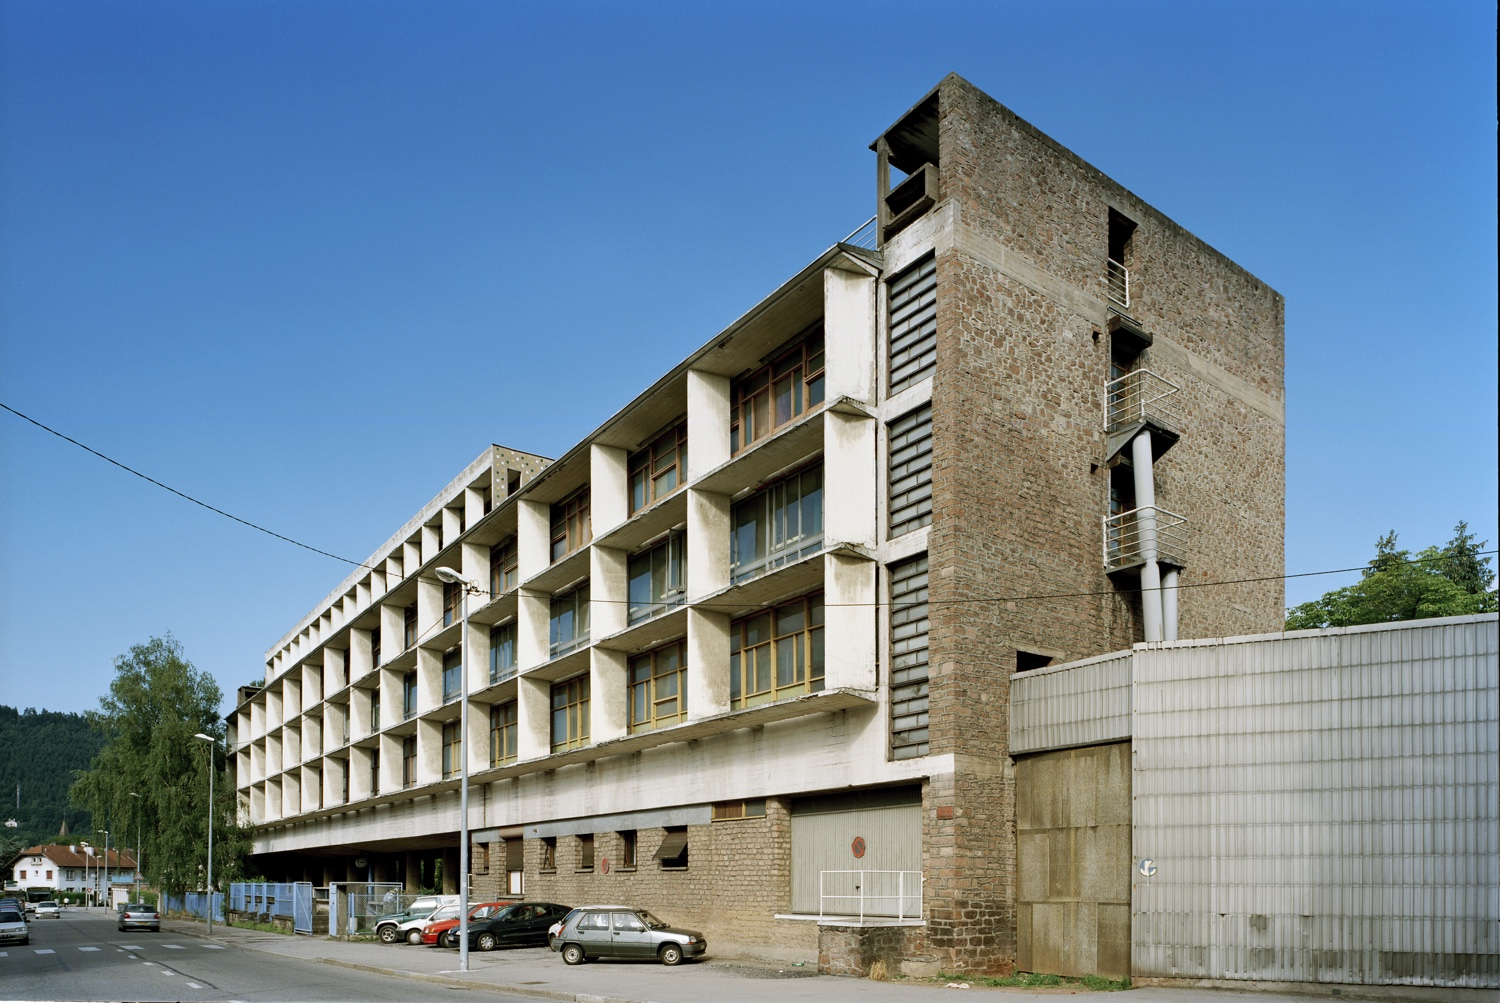 17 le corbusier buildings added to unesco world heritage list for Corbusier mobel